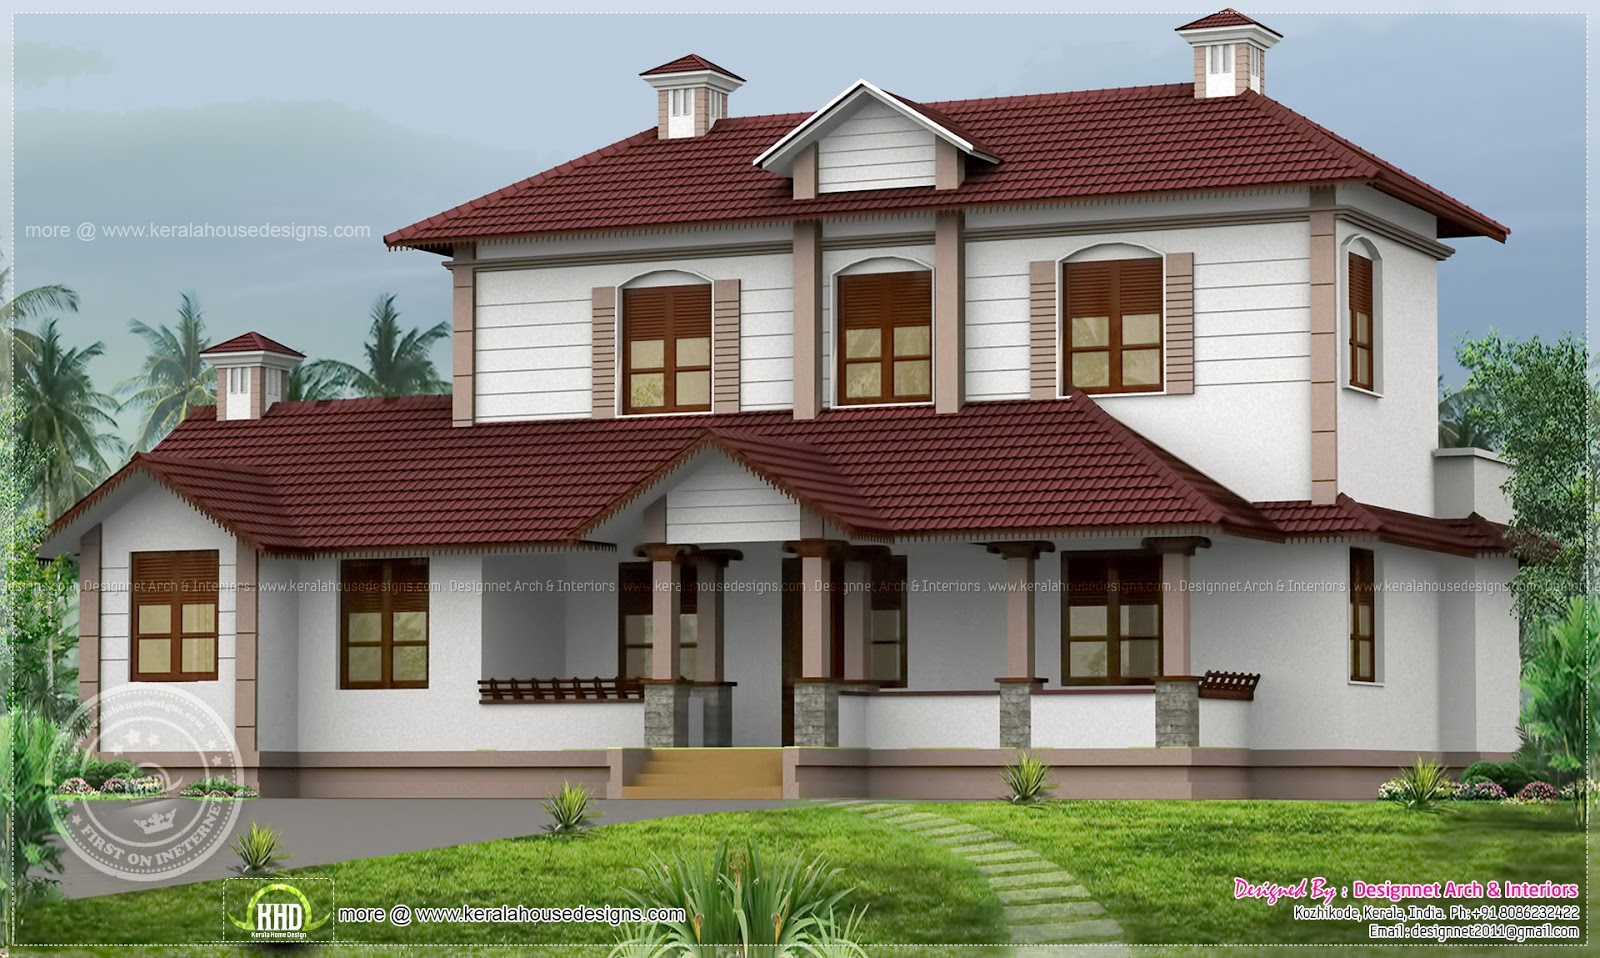 Renovation model of an old house home kerala plans - Old farmhouse house plans model ...